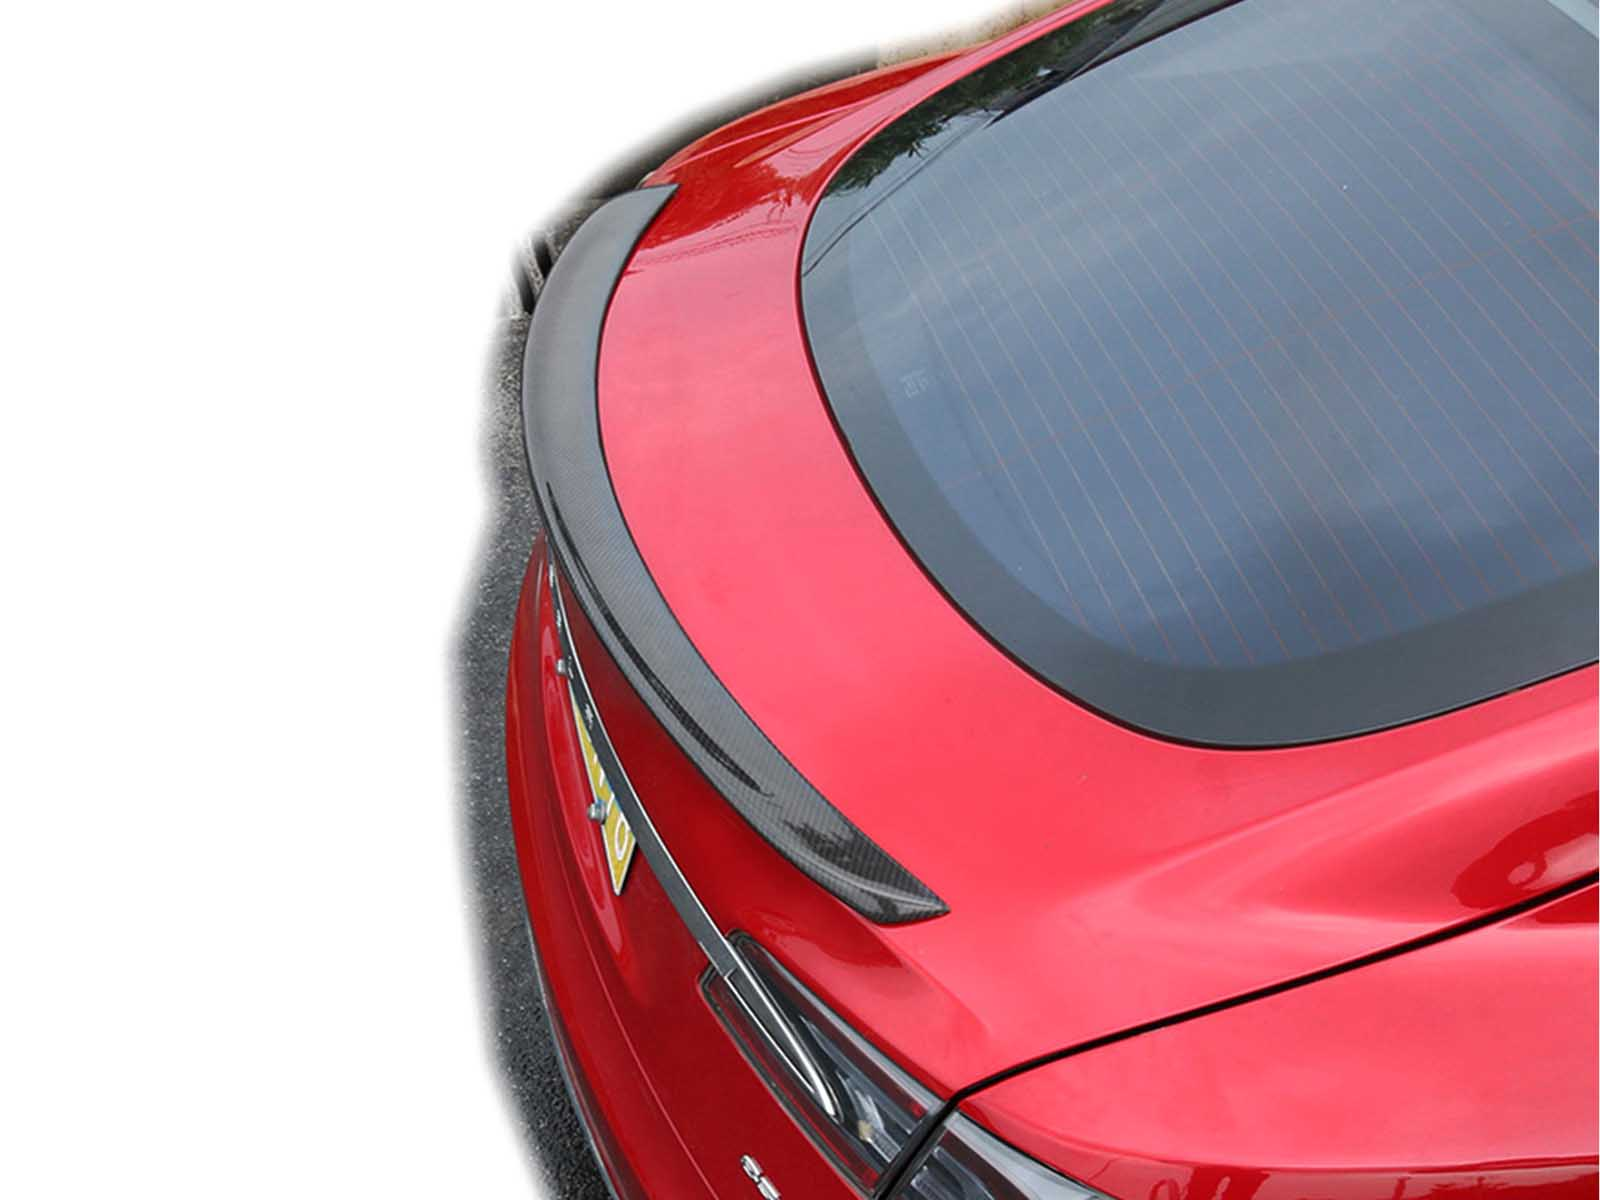 Model S: Real Carbon Fiber Tail Spoiler - Torque Alliance